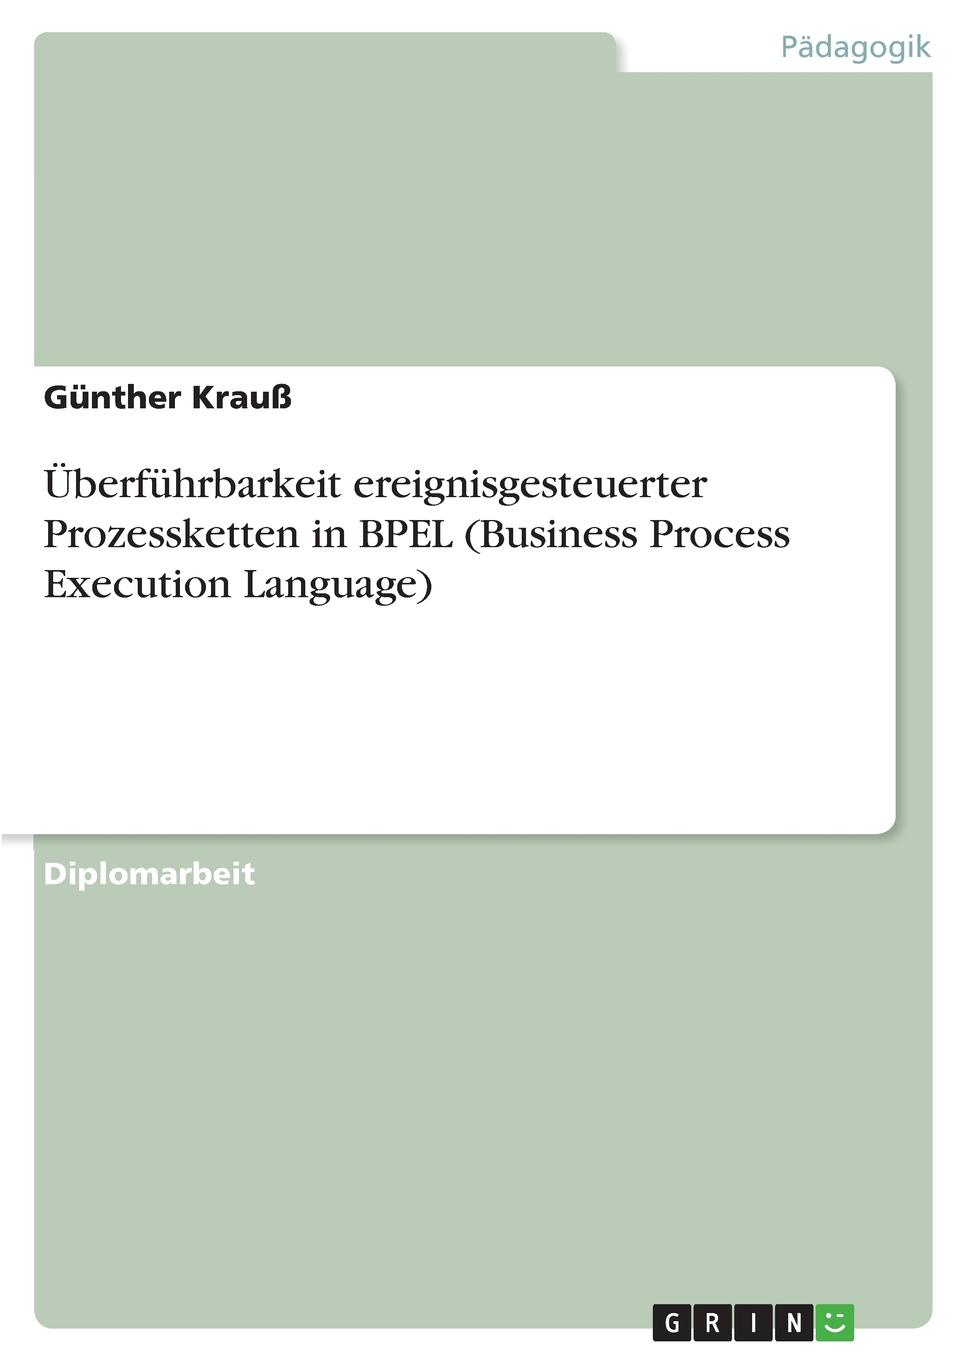 Günther Krauß Uberfuhrbarkeit ereignisgesteuerter Prozessketten in BPEL (Business Process Execution Language)